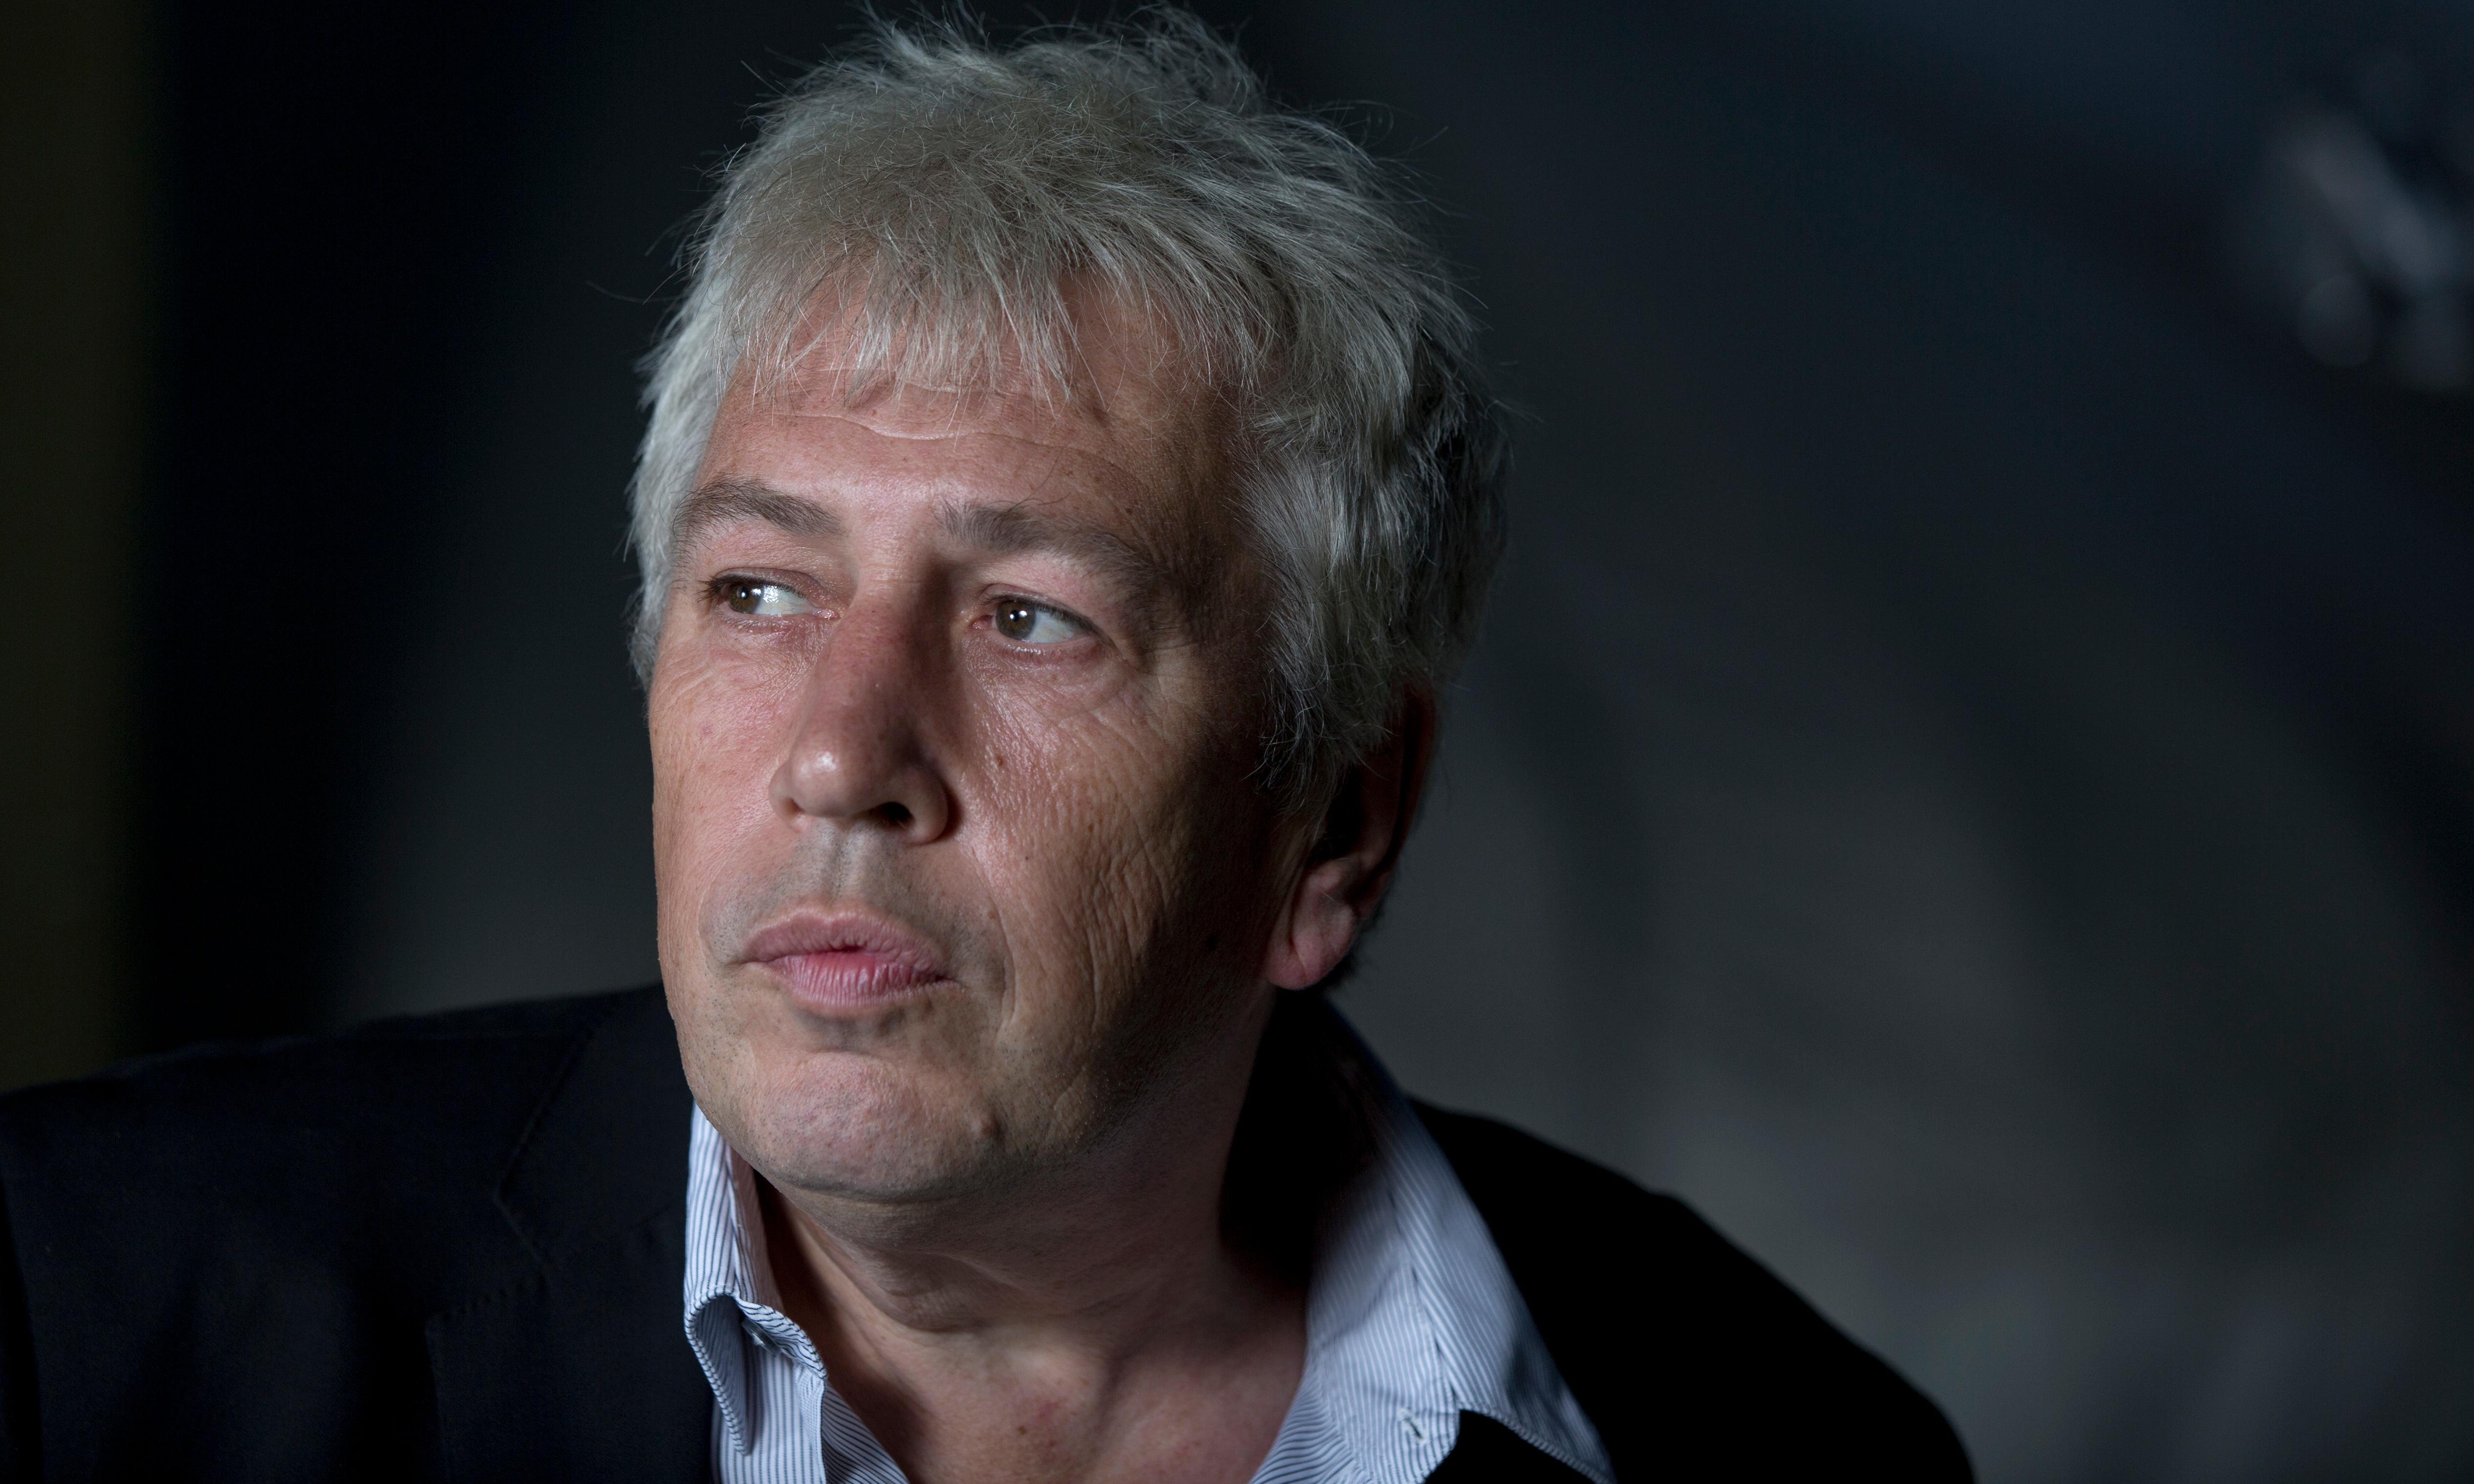 Rod Liddle vilifies disabled people. I'm tired of the hate. We all should be